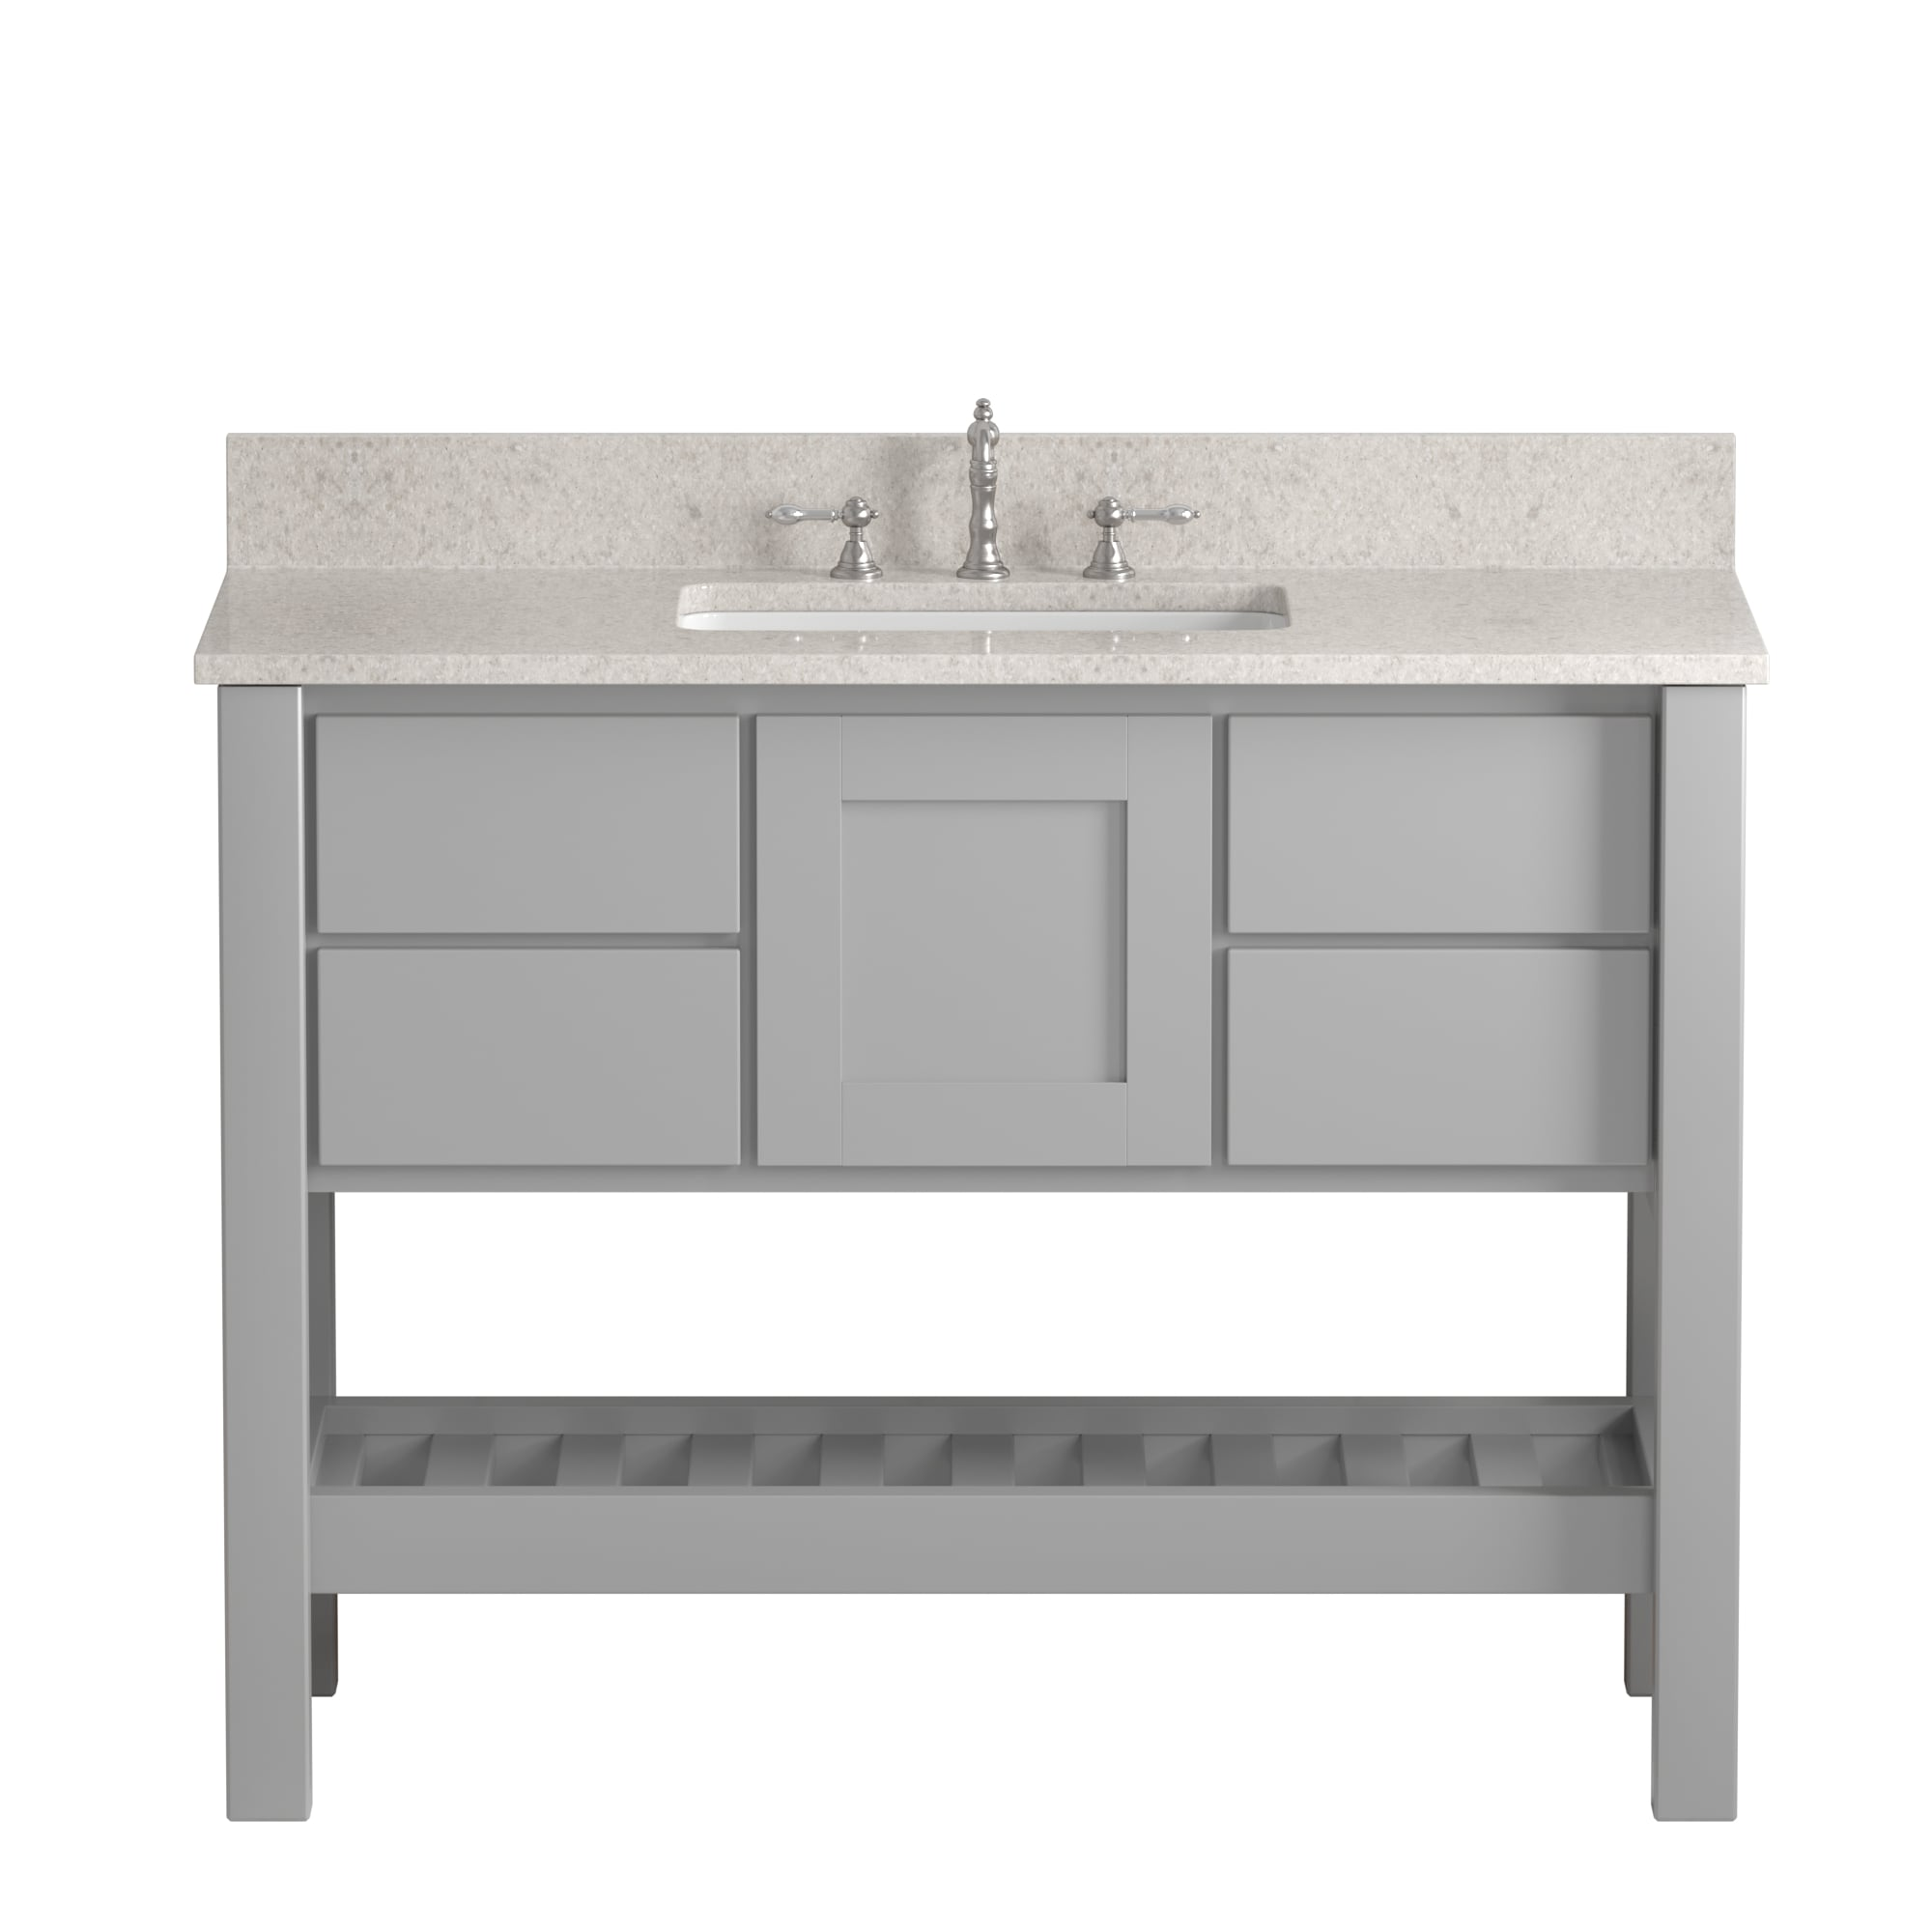 """Made in the USA, 48"""" Gray Solid Wood and Basin Sink Vanity with Countertop Options"""